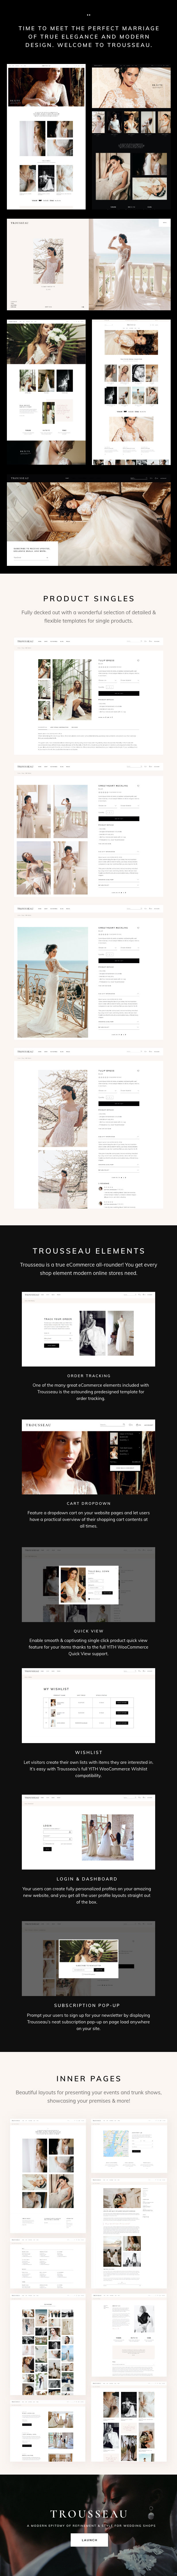 Trousseau - Bridal Shop WordPress Theme - 1